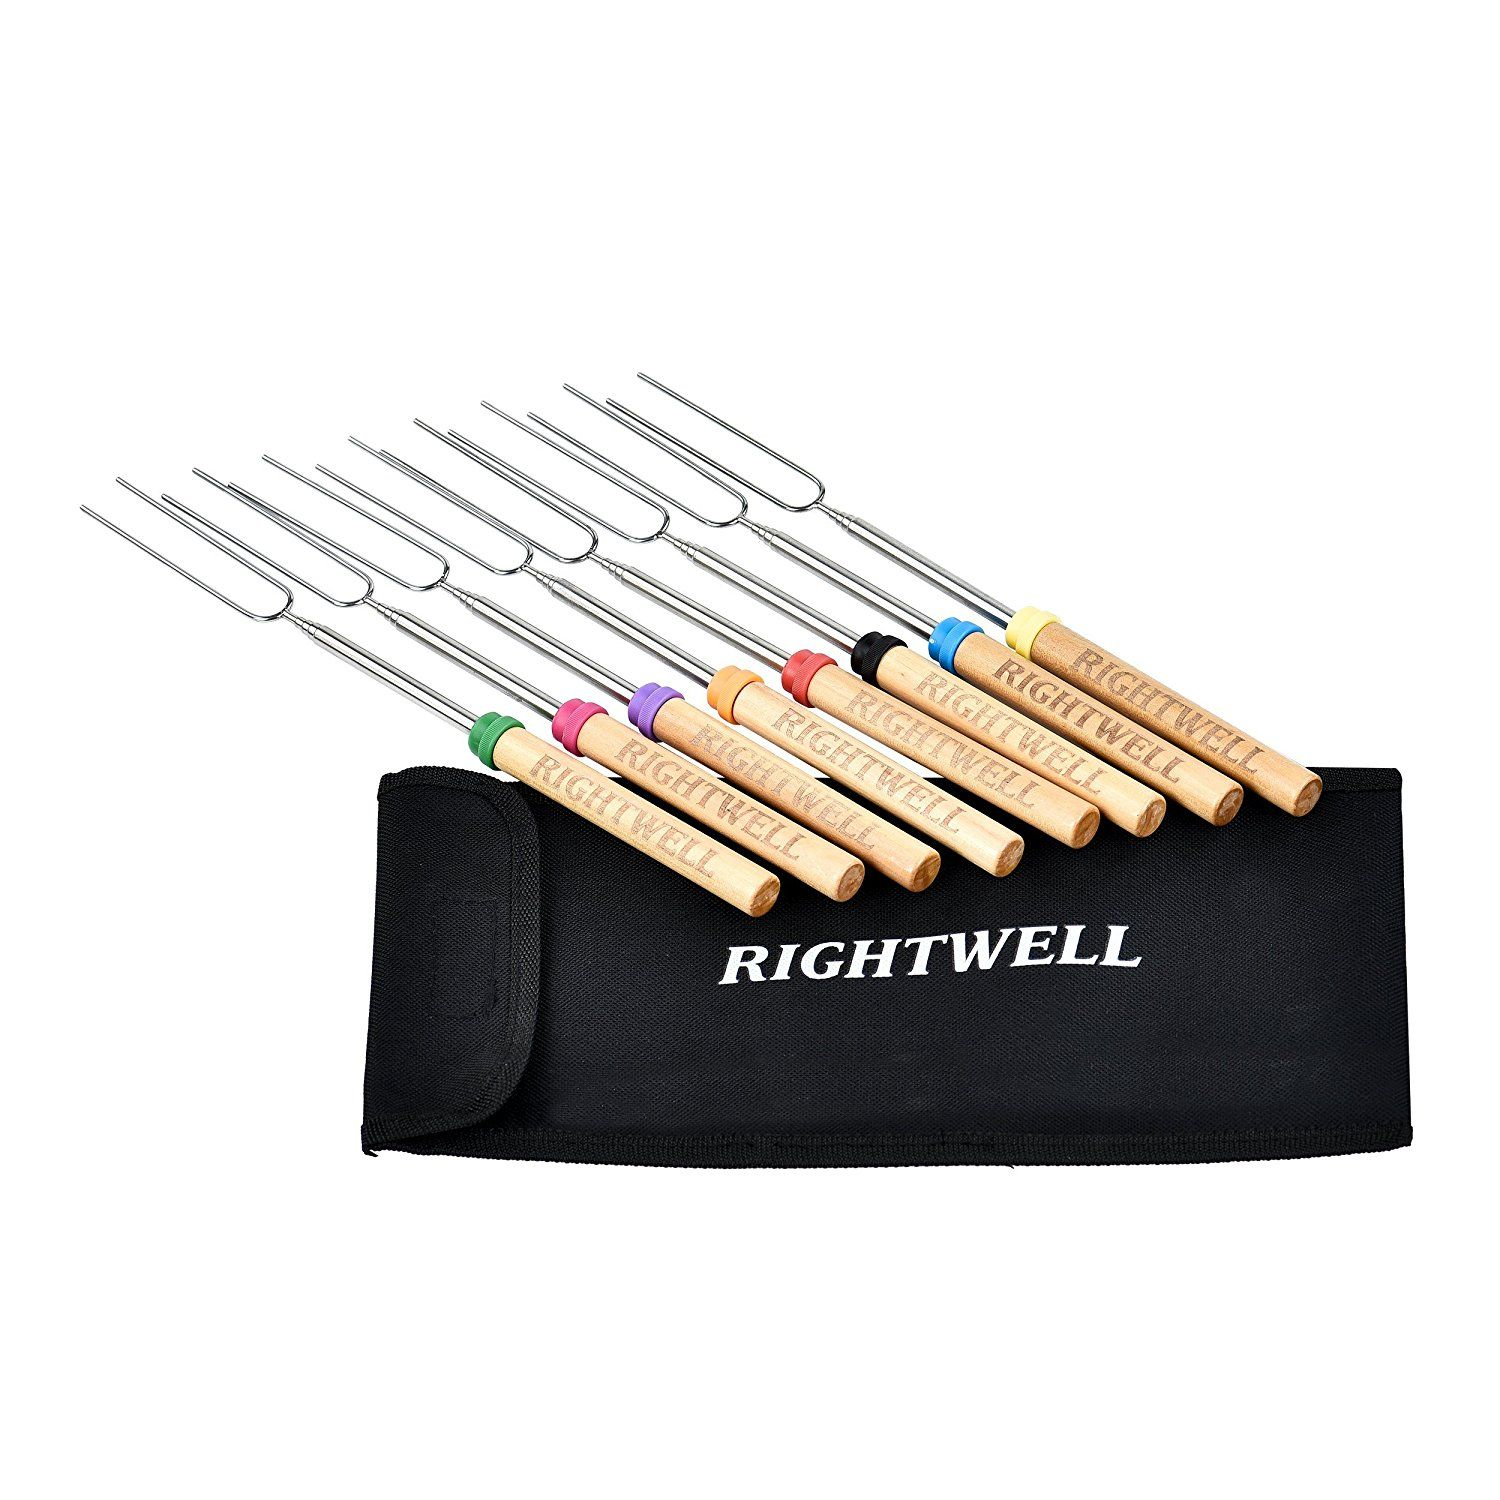 Rightwell Set of 8 Extendable Marshmallow Roasting Sticks 32 Inch ...